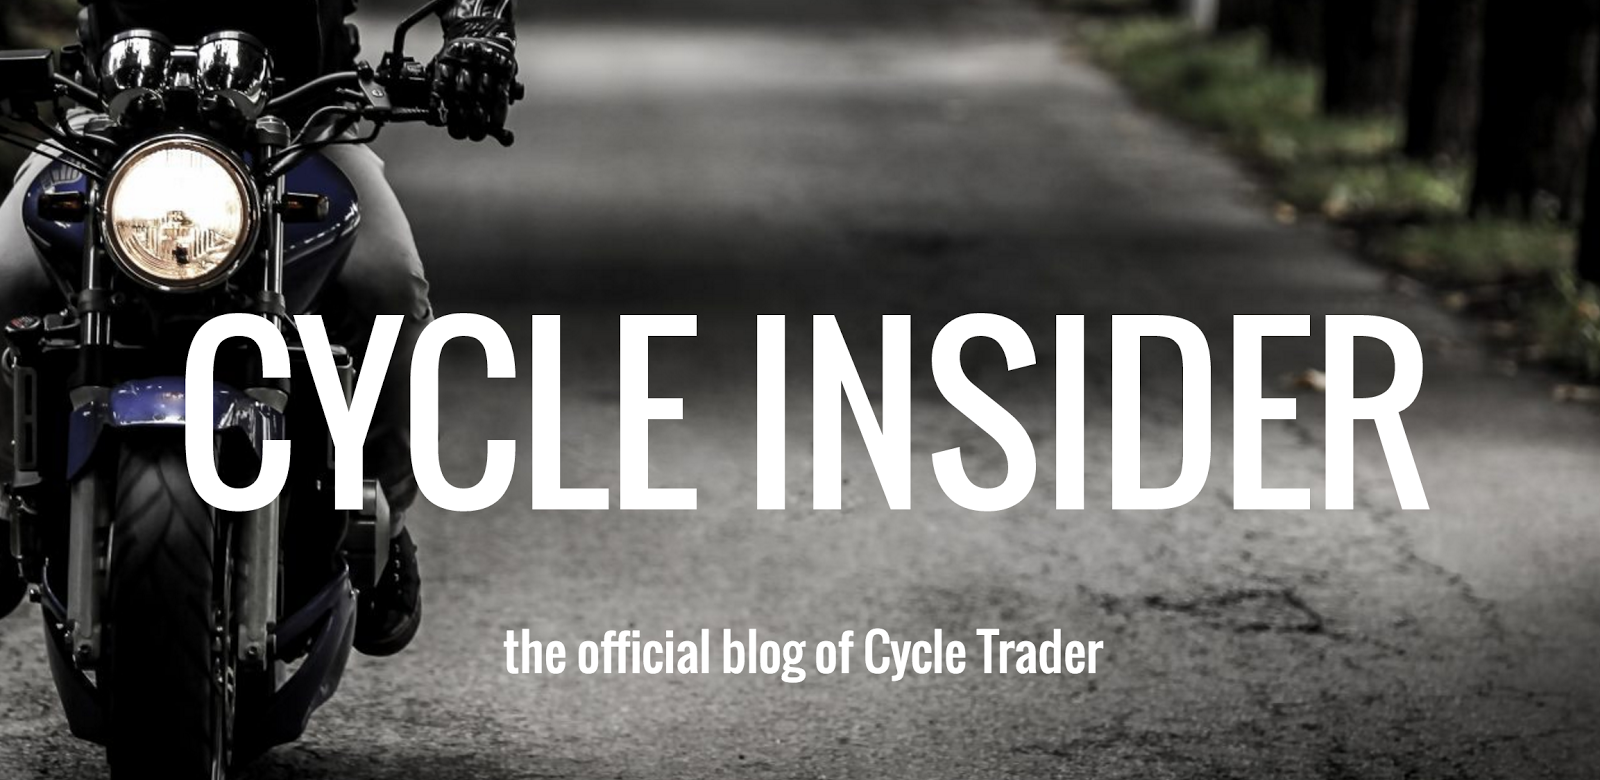 Cycle Trader Insider - Motorcycle Blog by Cycle Trader